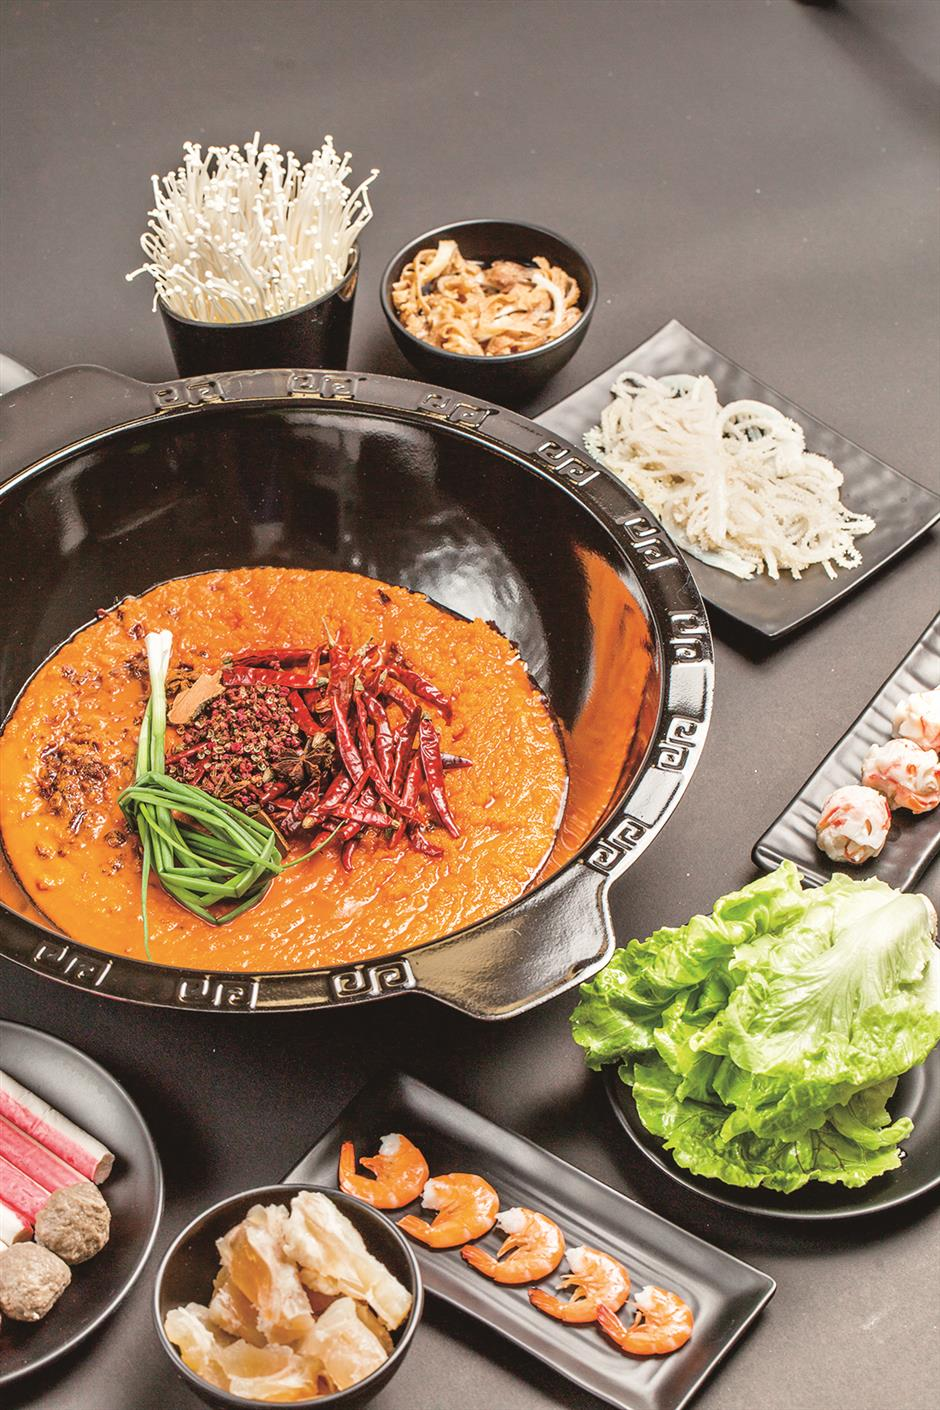 Premade mix adds spice to hotpot